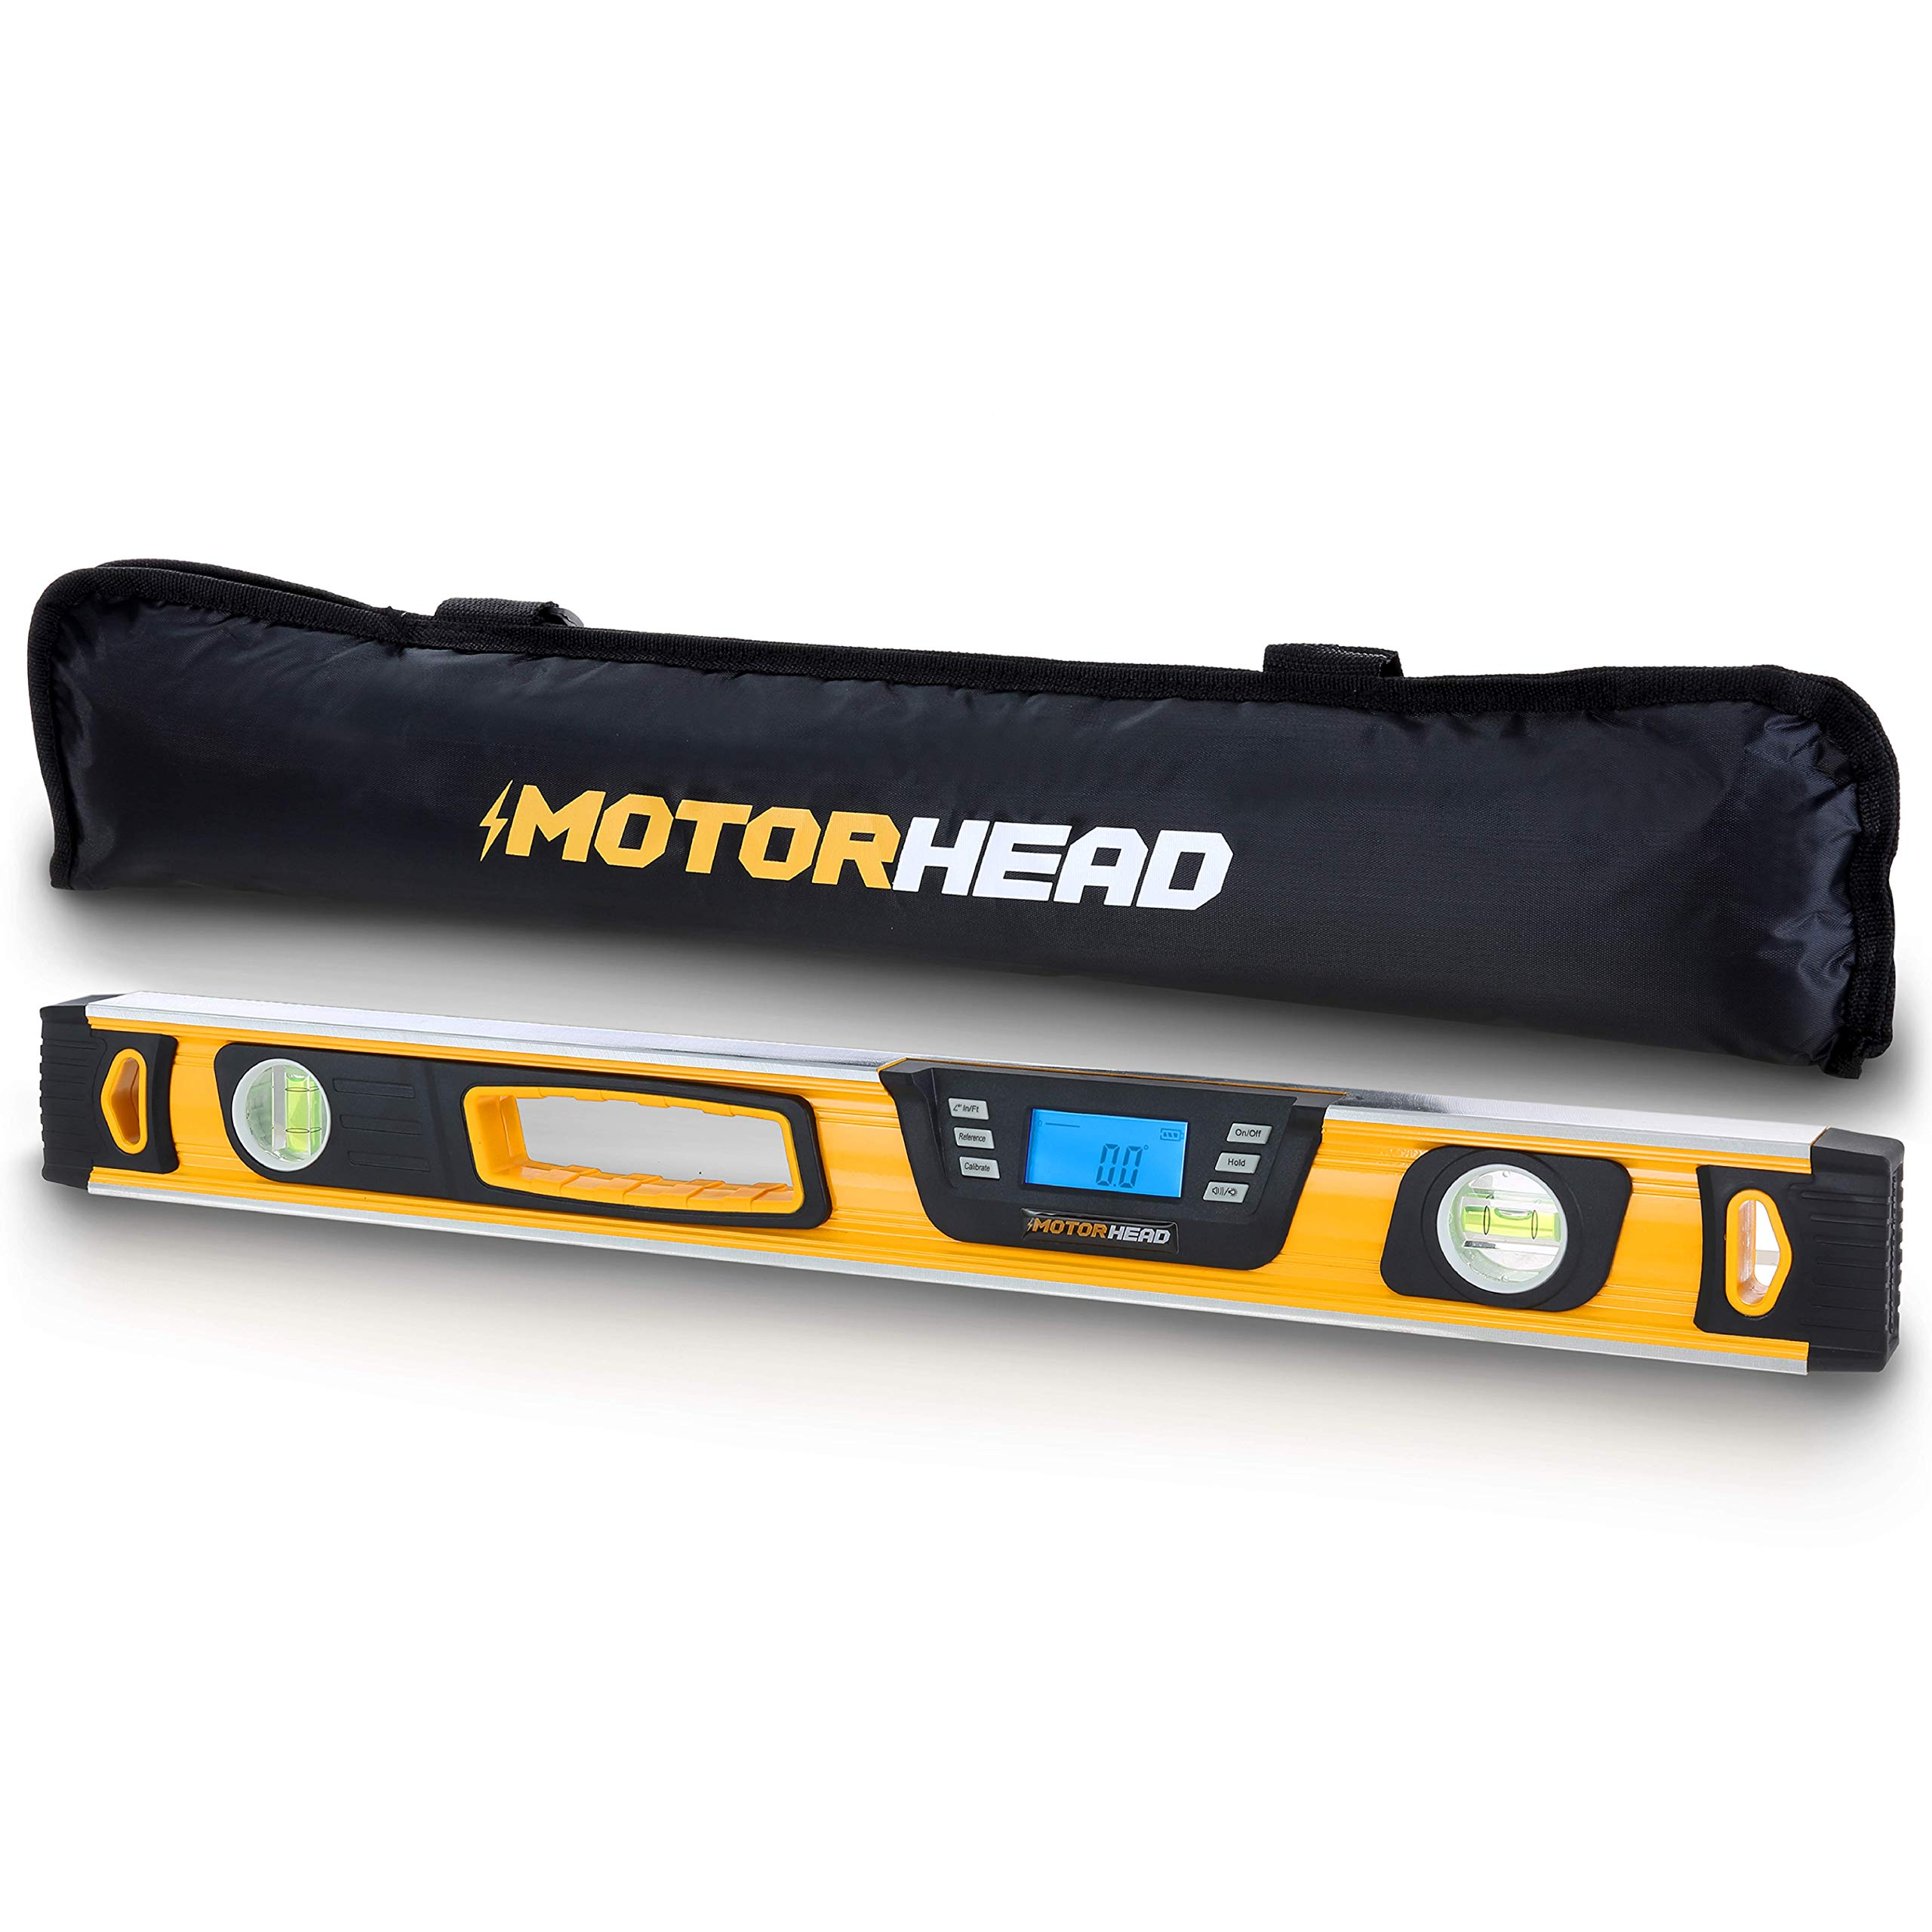 MOTORHEAD 24-Inch 0° - 180° SMART DIGITAL Level, LCD Screen, Audible Alerts, Water, Dust & Shock Resistant, Magnetic Bottom, Includes Bag, High-Visibility, Solid-Milled Aluminum, USA-Based Support